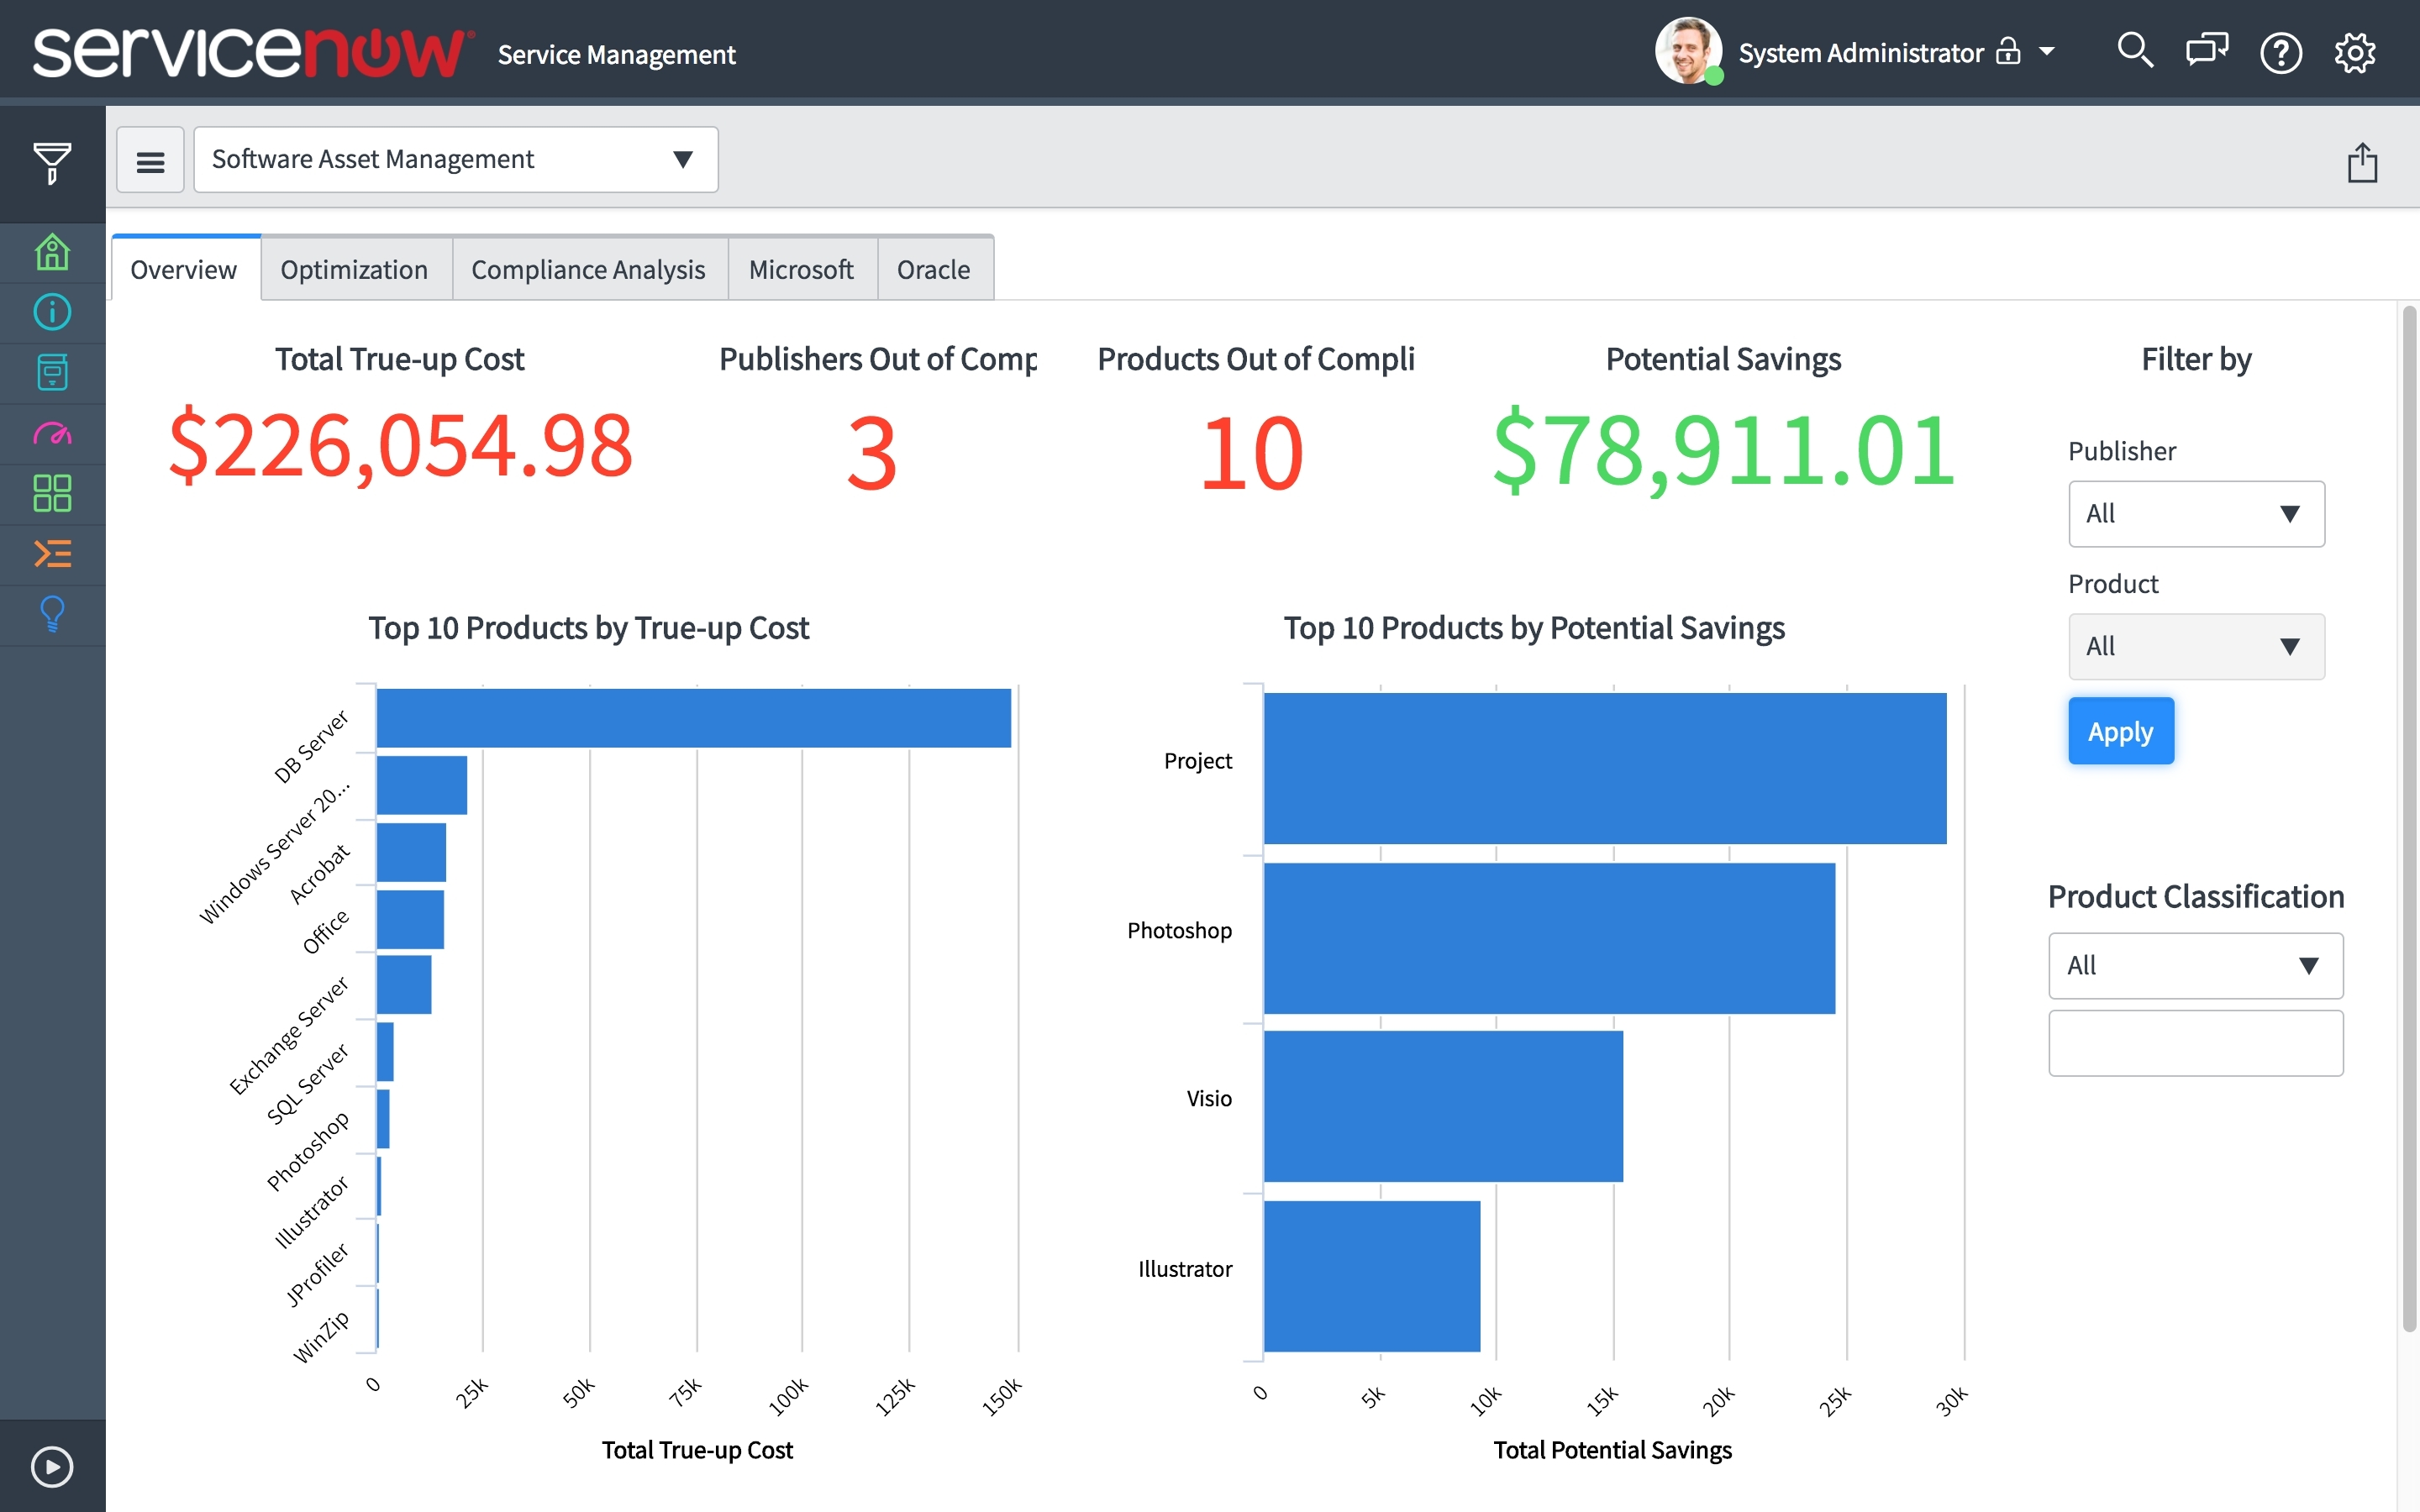 ServiceNow Launches Software Asset Management | Business Wire